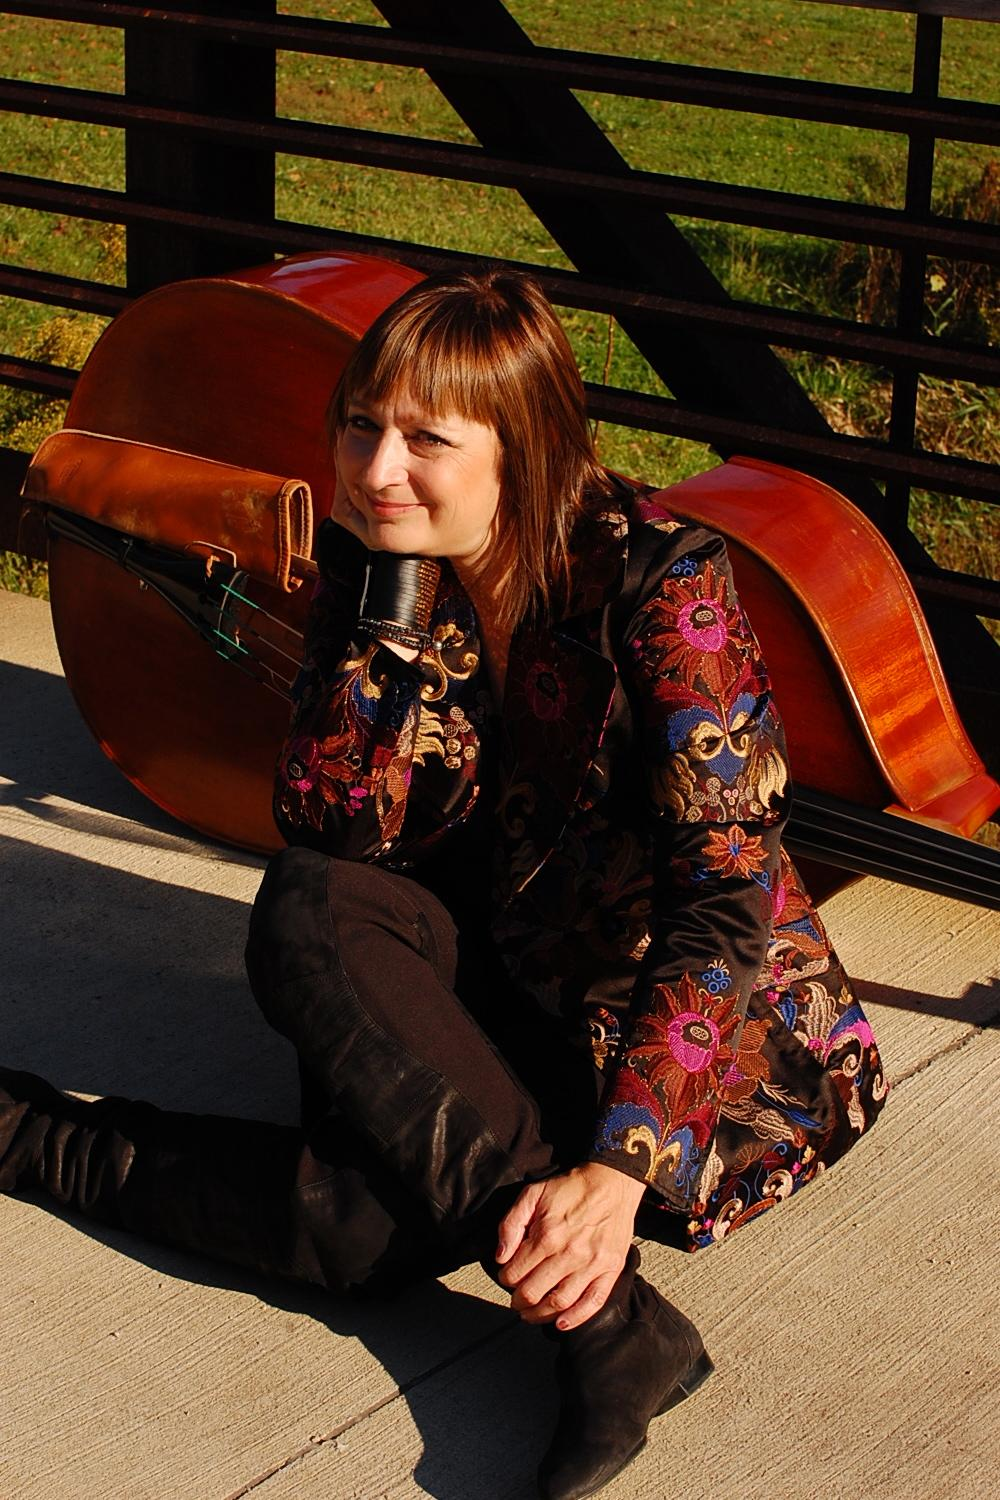 Portrait of a performer sitting with her legs crossed on a sidewalk wearing a floral patterned jacket. A cello is laid on its side behind her; a rustic fence and green grass behind them.